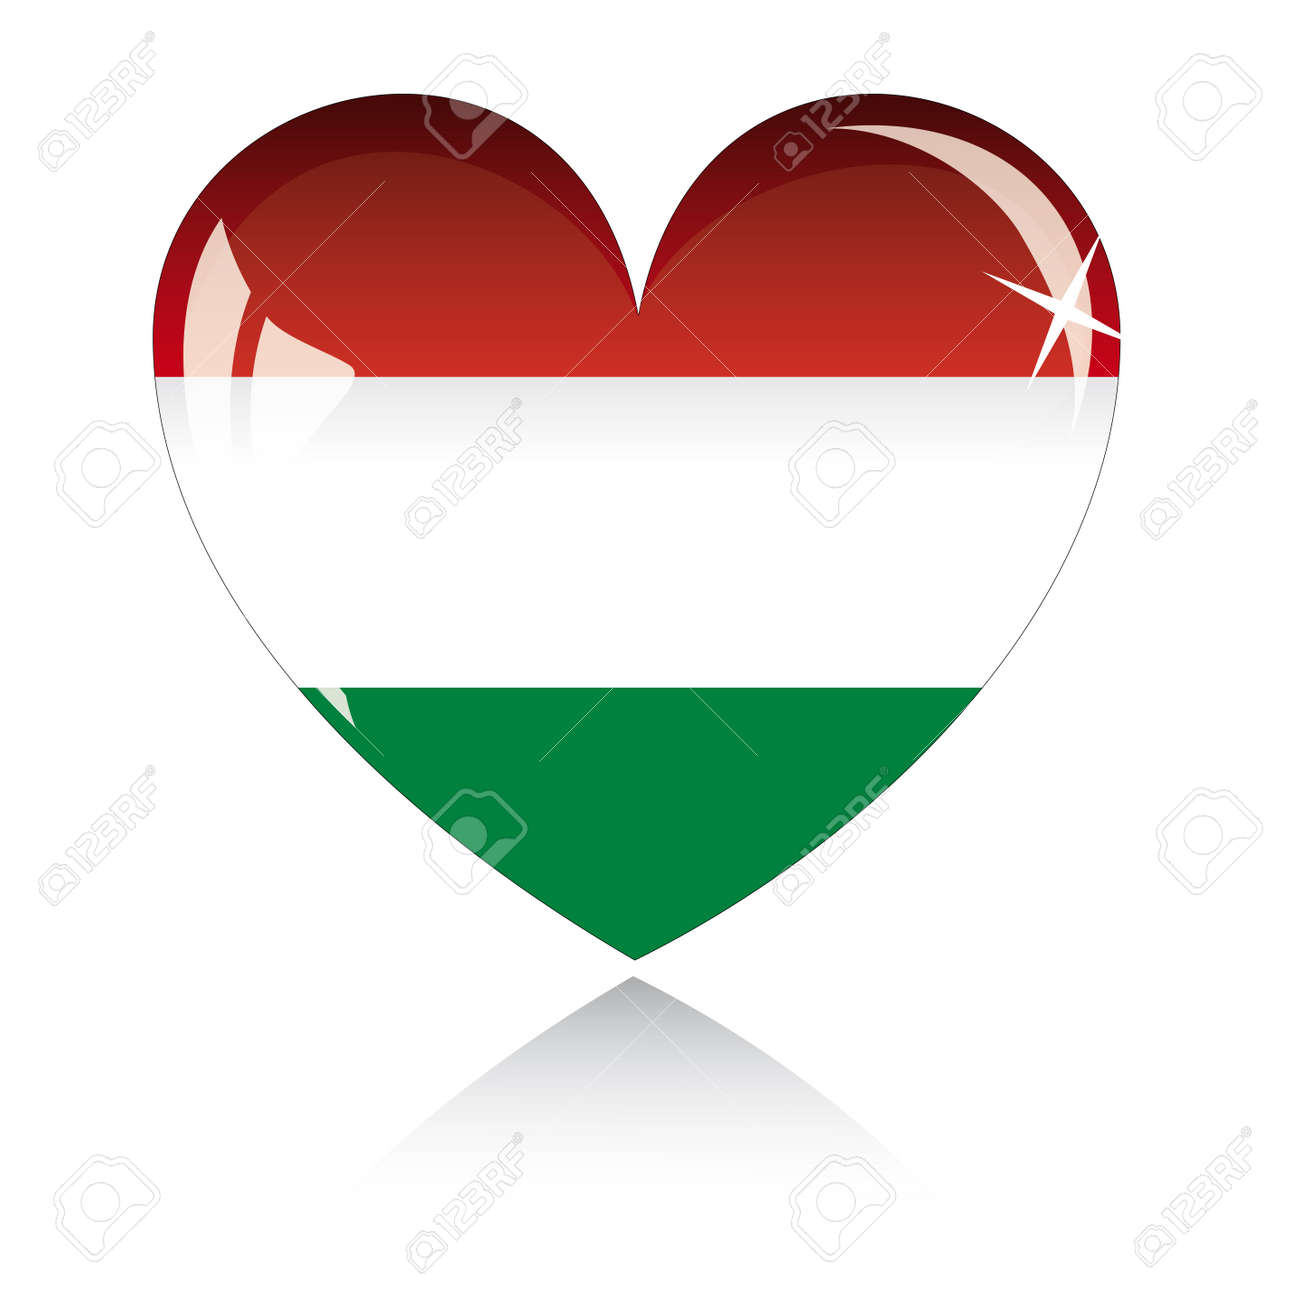 heart with Hungary flag texture isolated on a white background. Stock Vector - 6245777